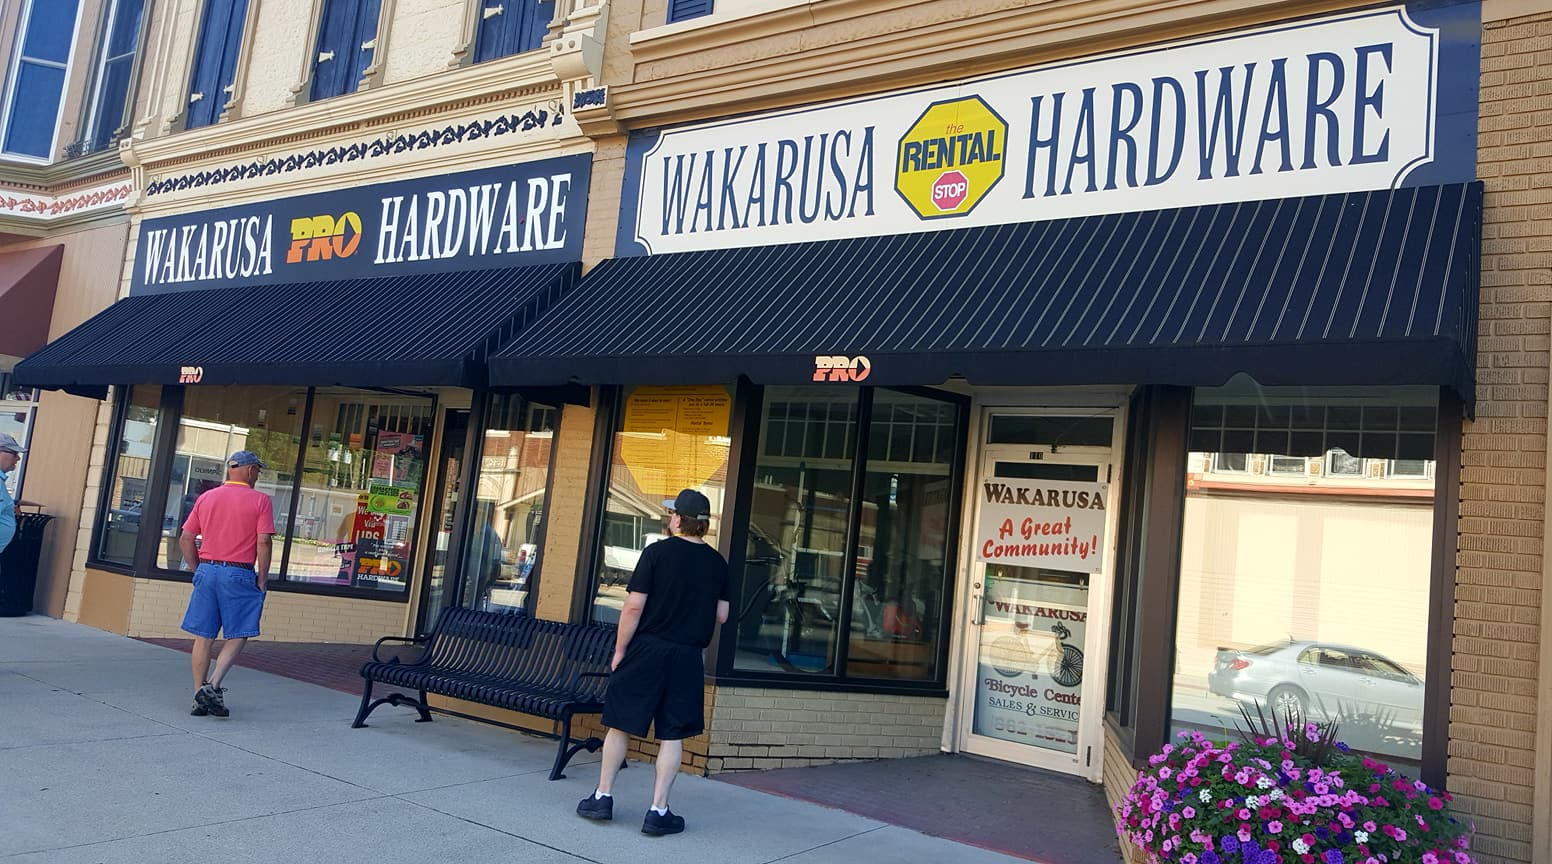 Hardware Store Front